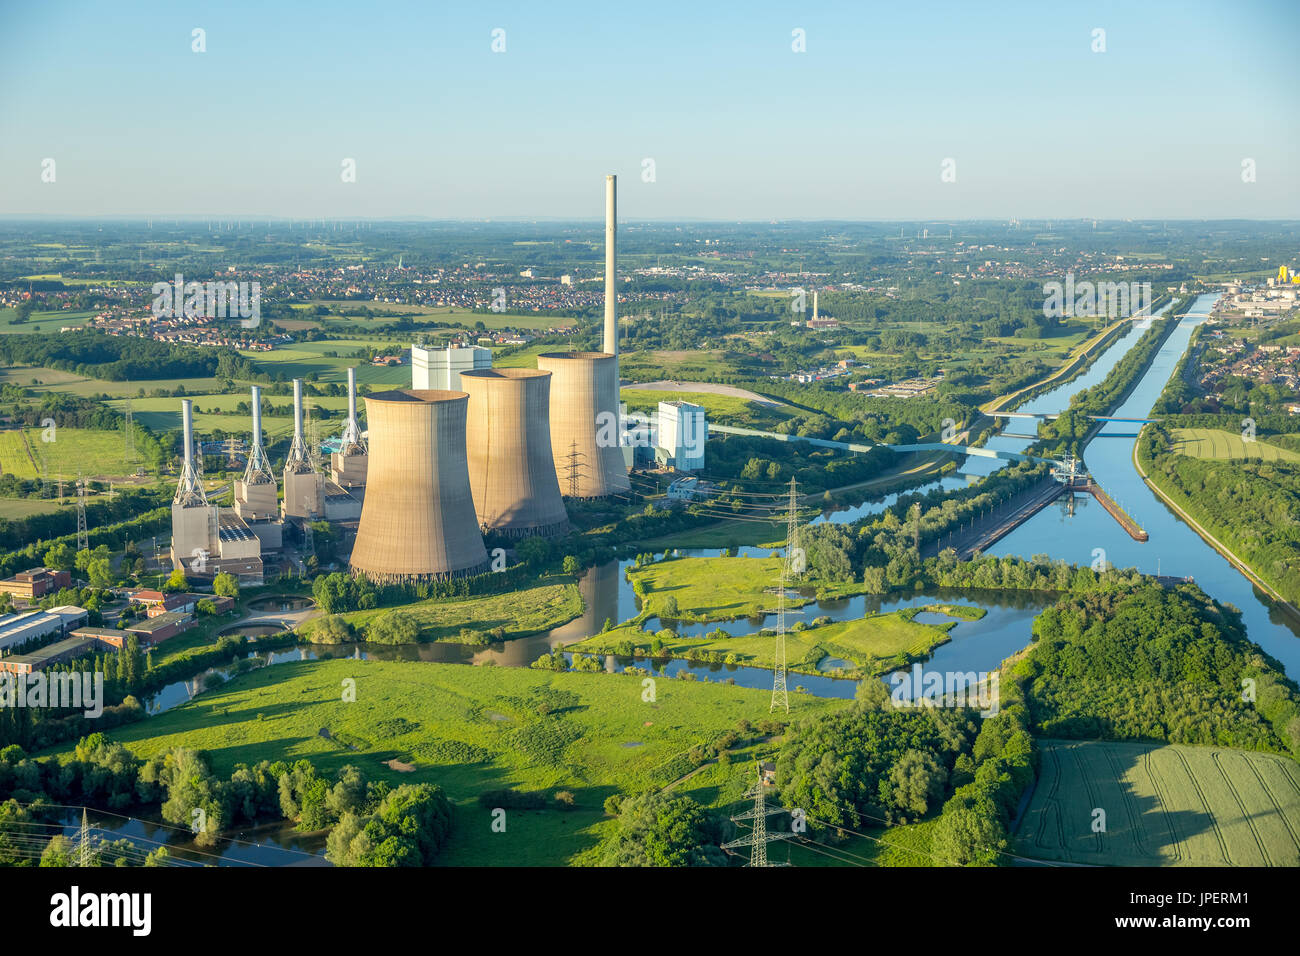 Schornstein Chemnitz Schornstein Stock Photos And Schornstein Stock Images Alamy